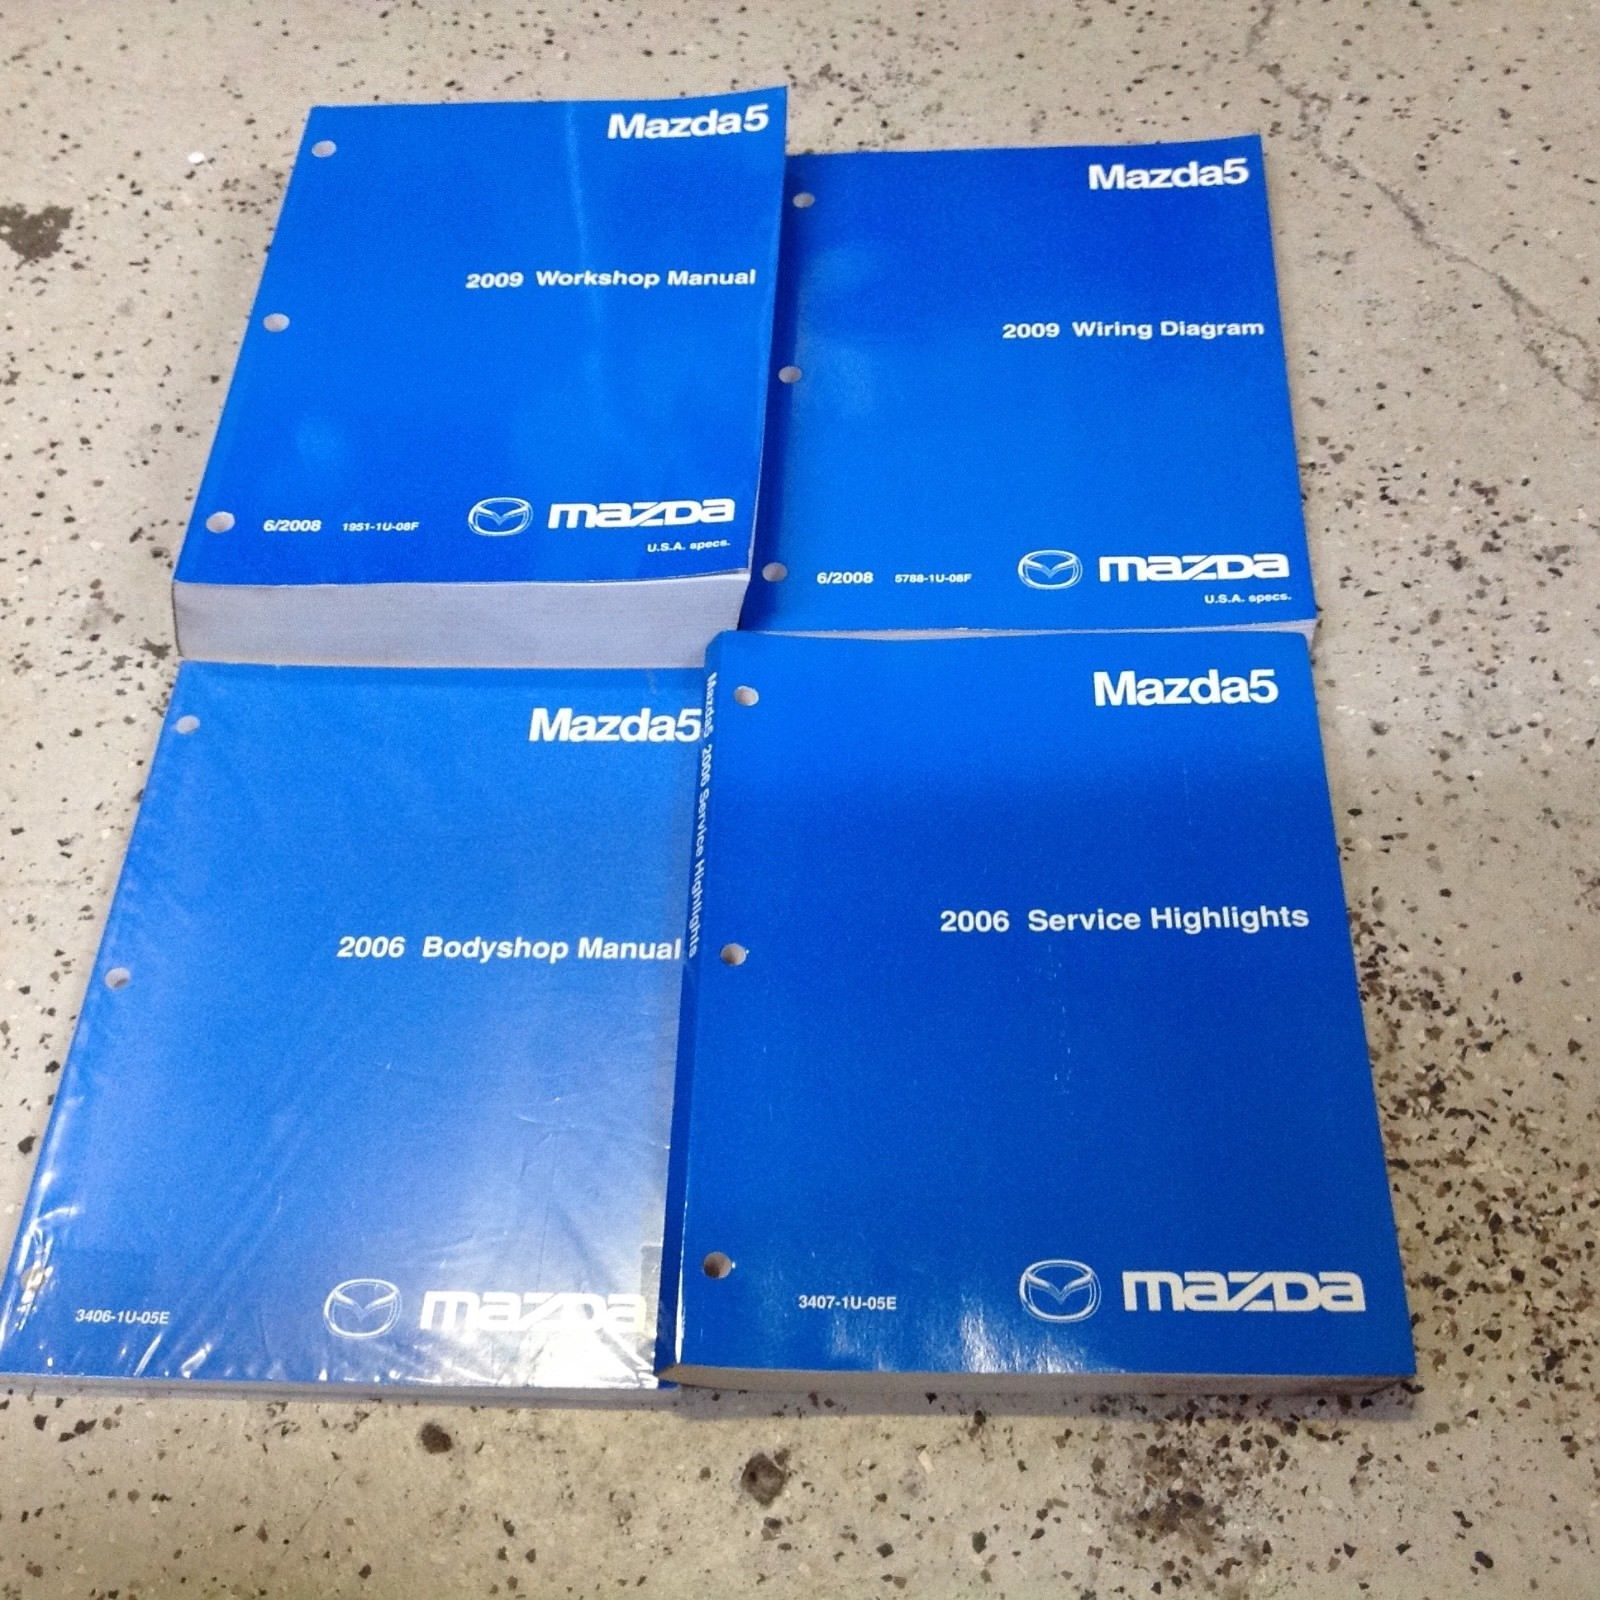 Primary image for 2009 Mazda5 MAZDA 5 Service Repair Shop Manual Set W EWD Body Highlights OEM